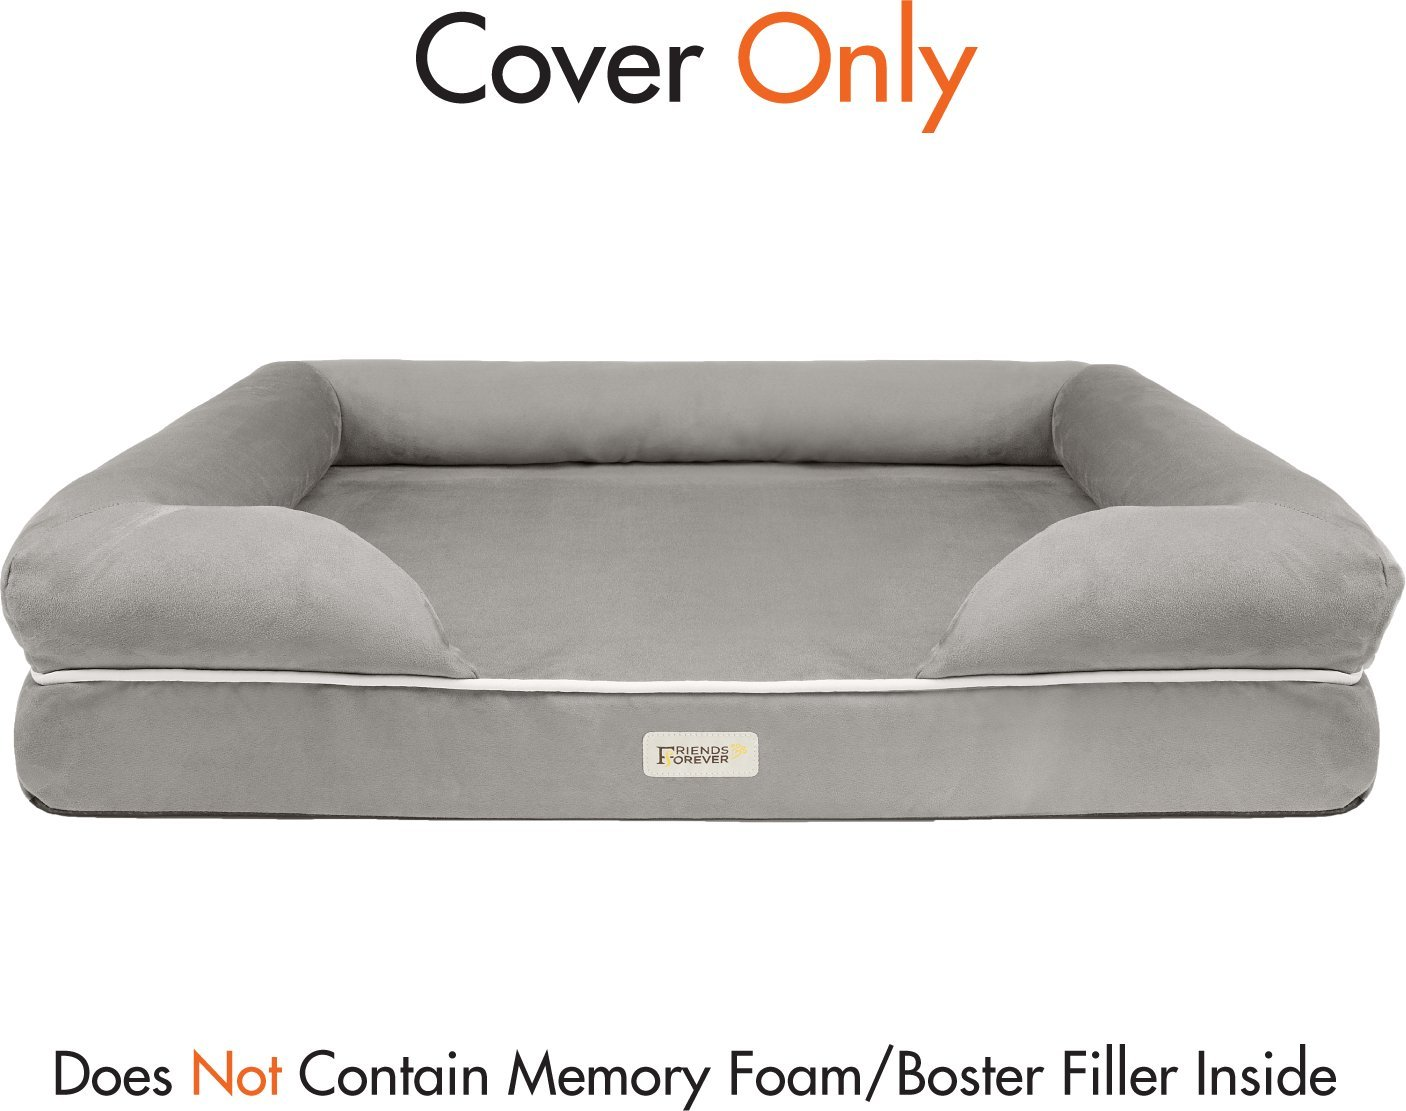 Pewter XL Pewter XL Friends Forever 100% Suede Super Deluxe Upgrade Replacement Cover Bed Couch Dog Bed (Pewter XL Cover)